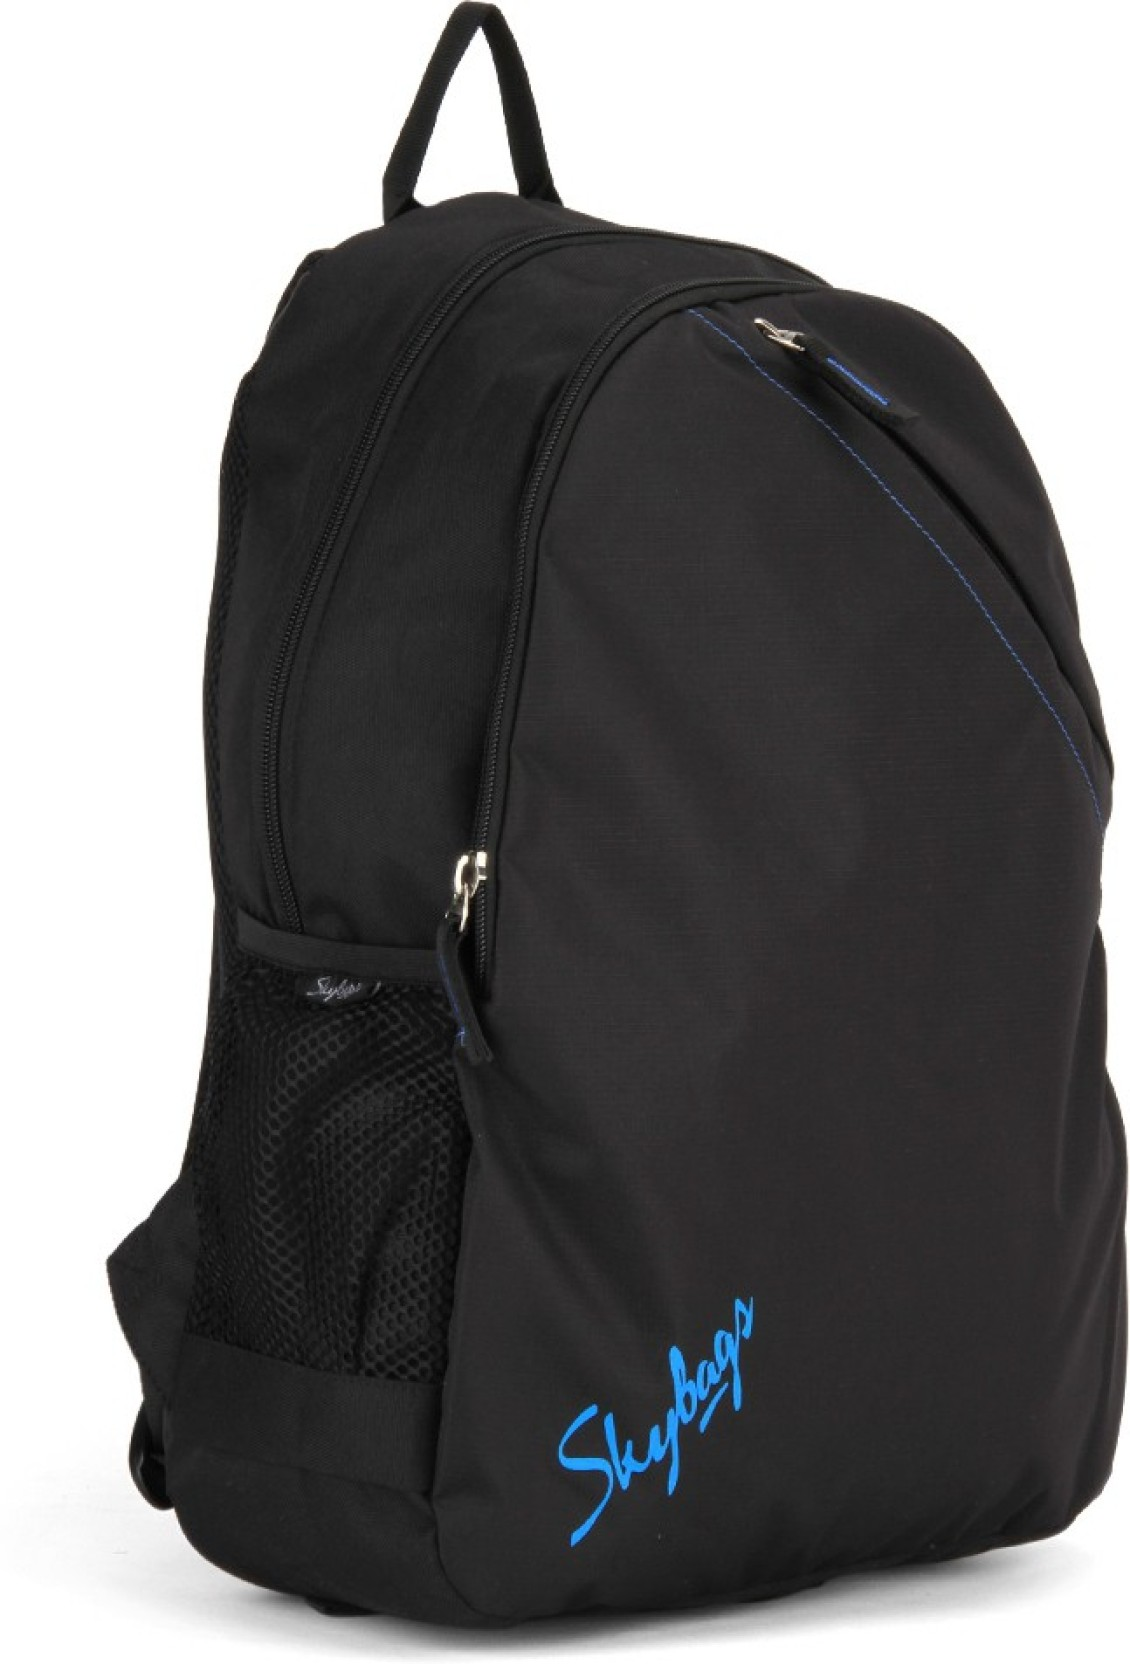 All Black Backpack No Logo- Fenix Toulouse Handball f2b4ba66ffb02